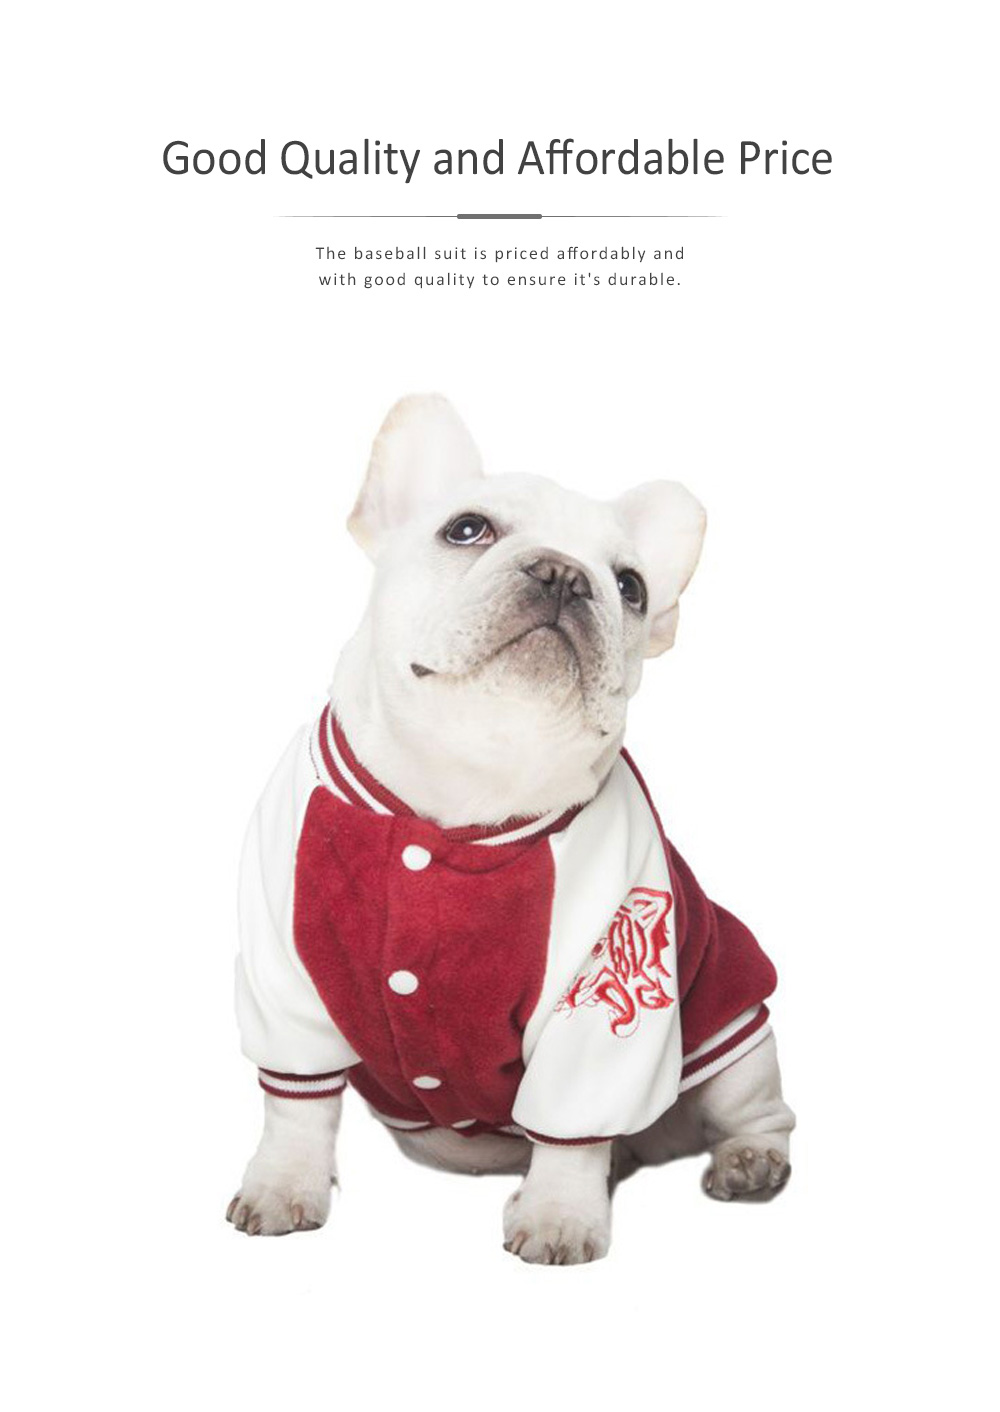 Dog Baseball Costume Double-layer Embroidered New-style Baseball Suit for Both Big and Small Size Dogs in Autumn and Winter 3